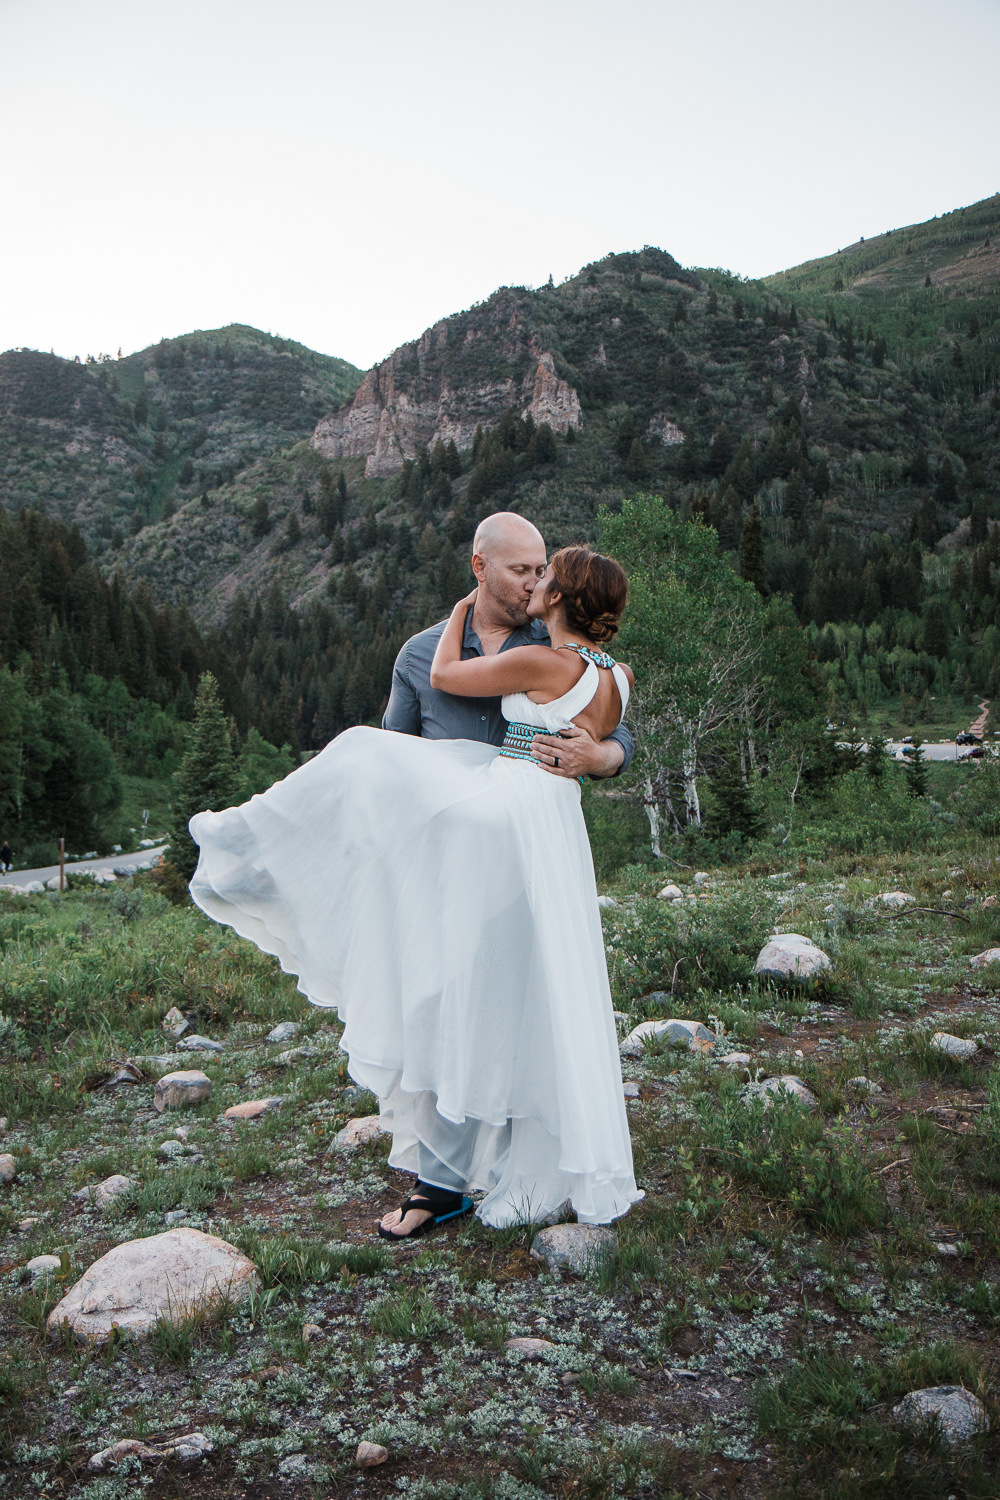 Gorgeous anniversary vow renewal in the mountains of Utah